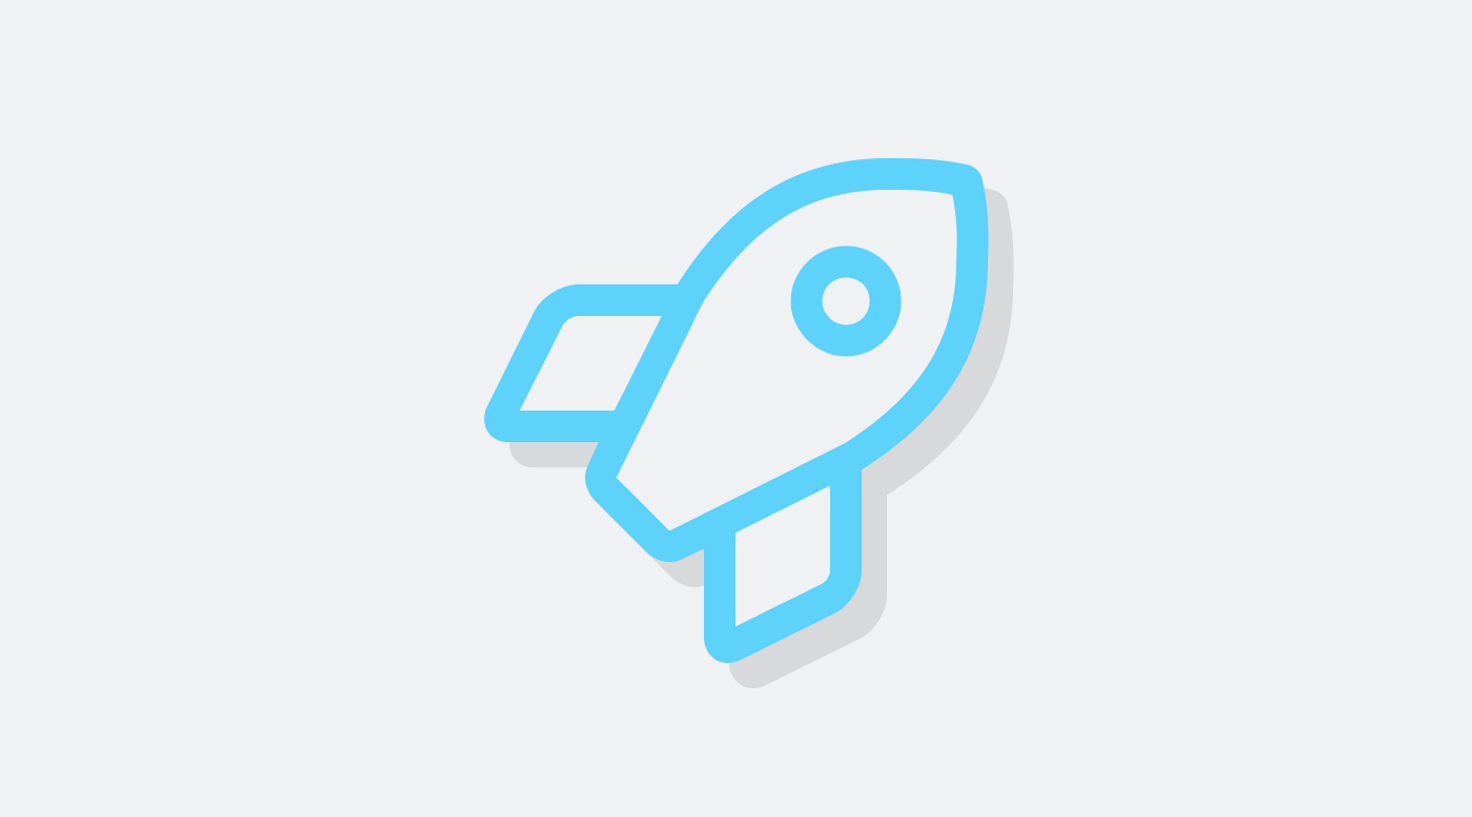 Image of light blue icon of a rocket